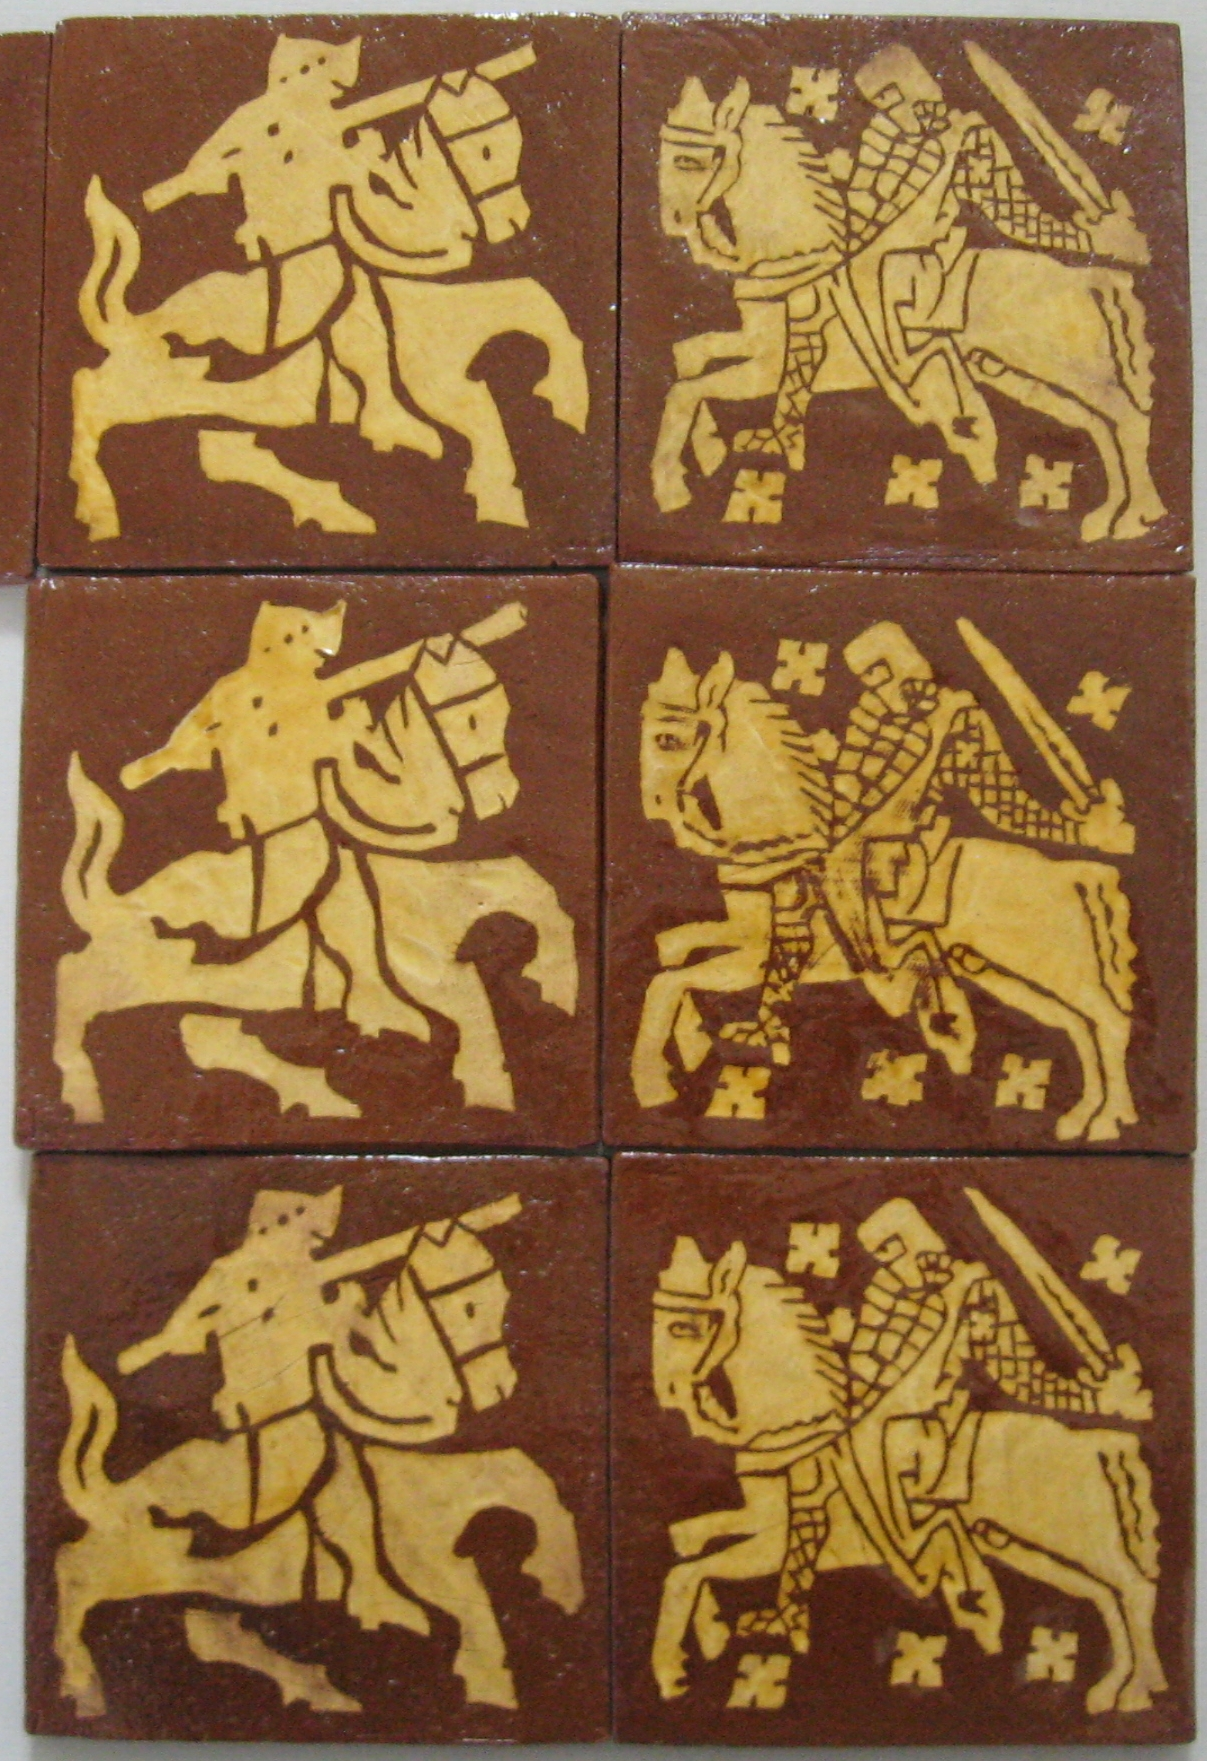 Knight tiles for Maleficent